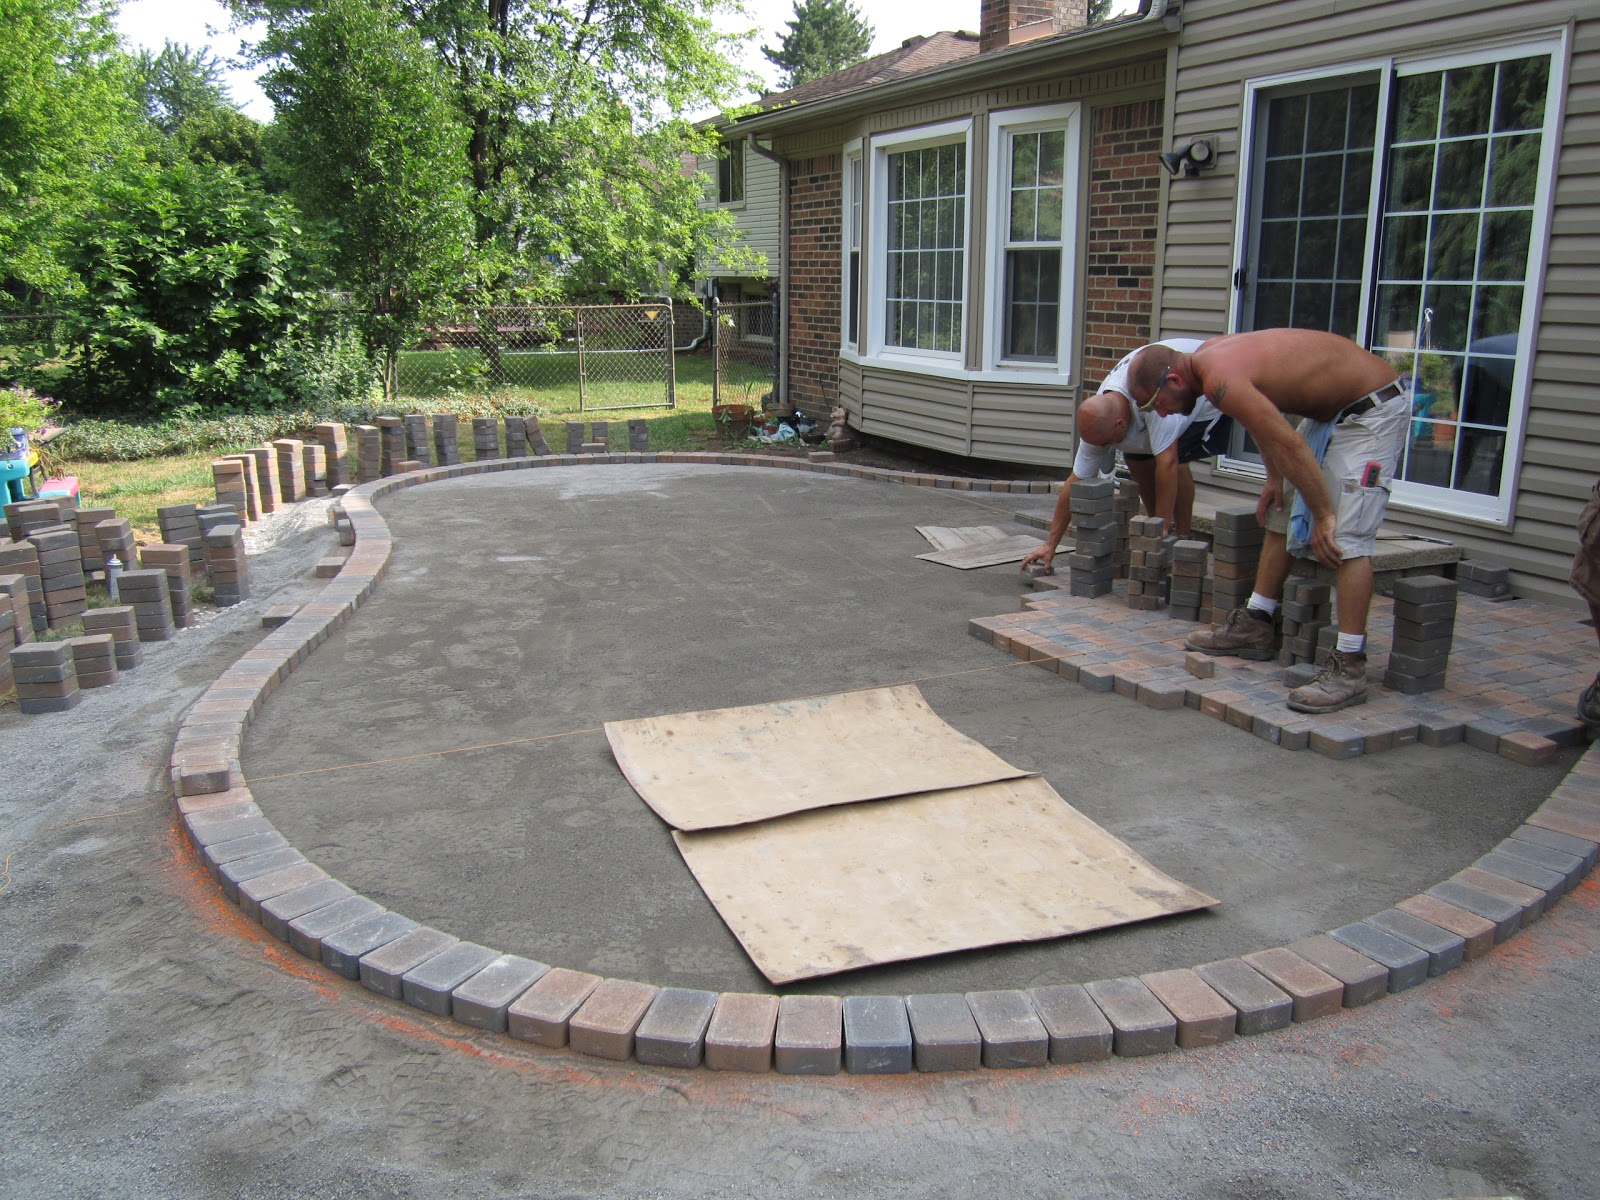 Fabulous Concrete Paver Patio Designs 1600 x 1200 · 544 kB · jpeg